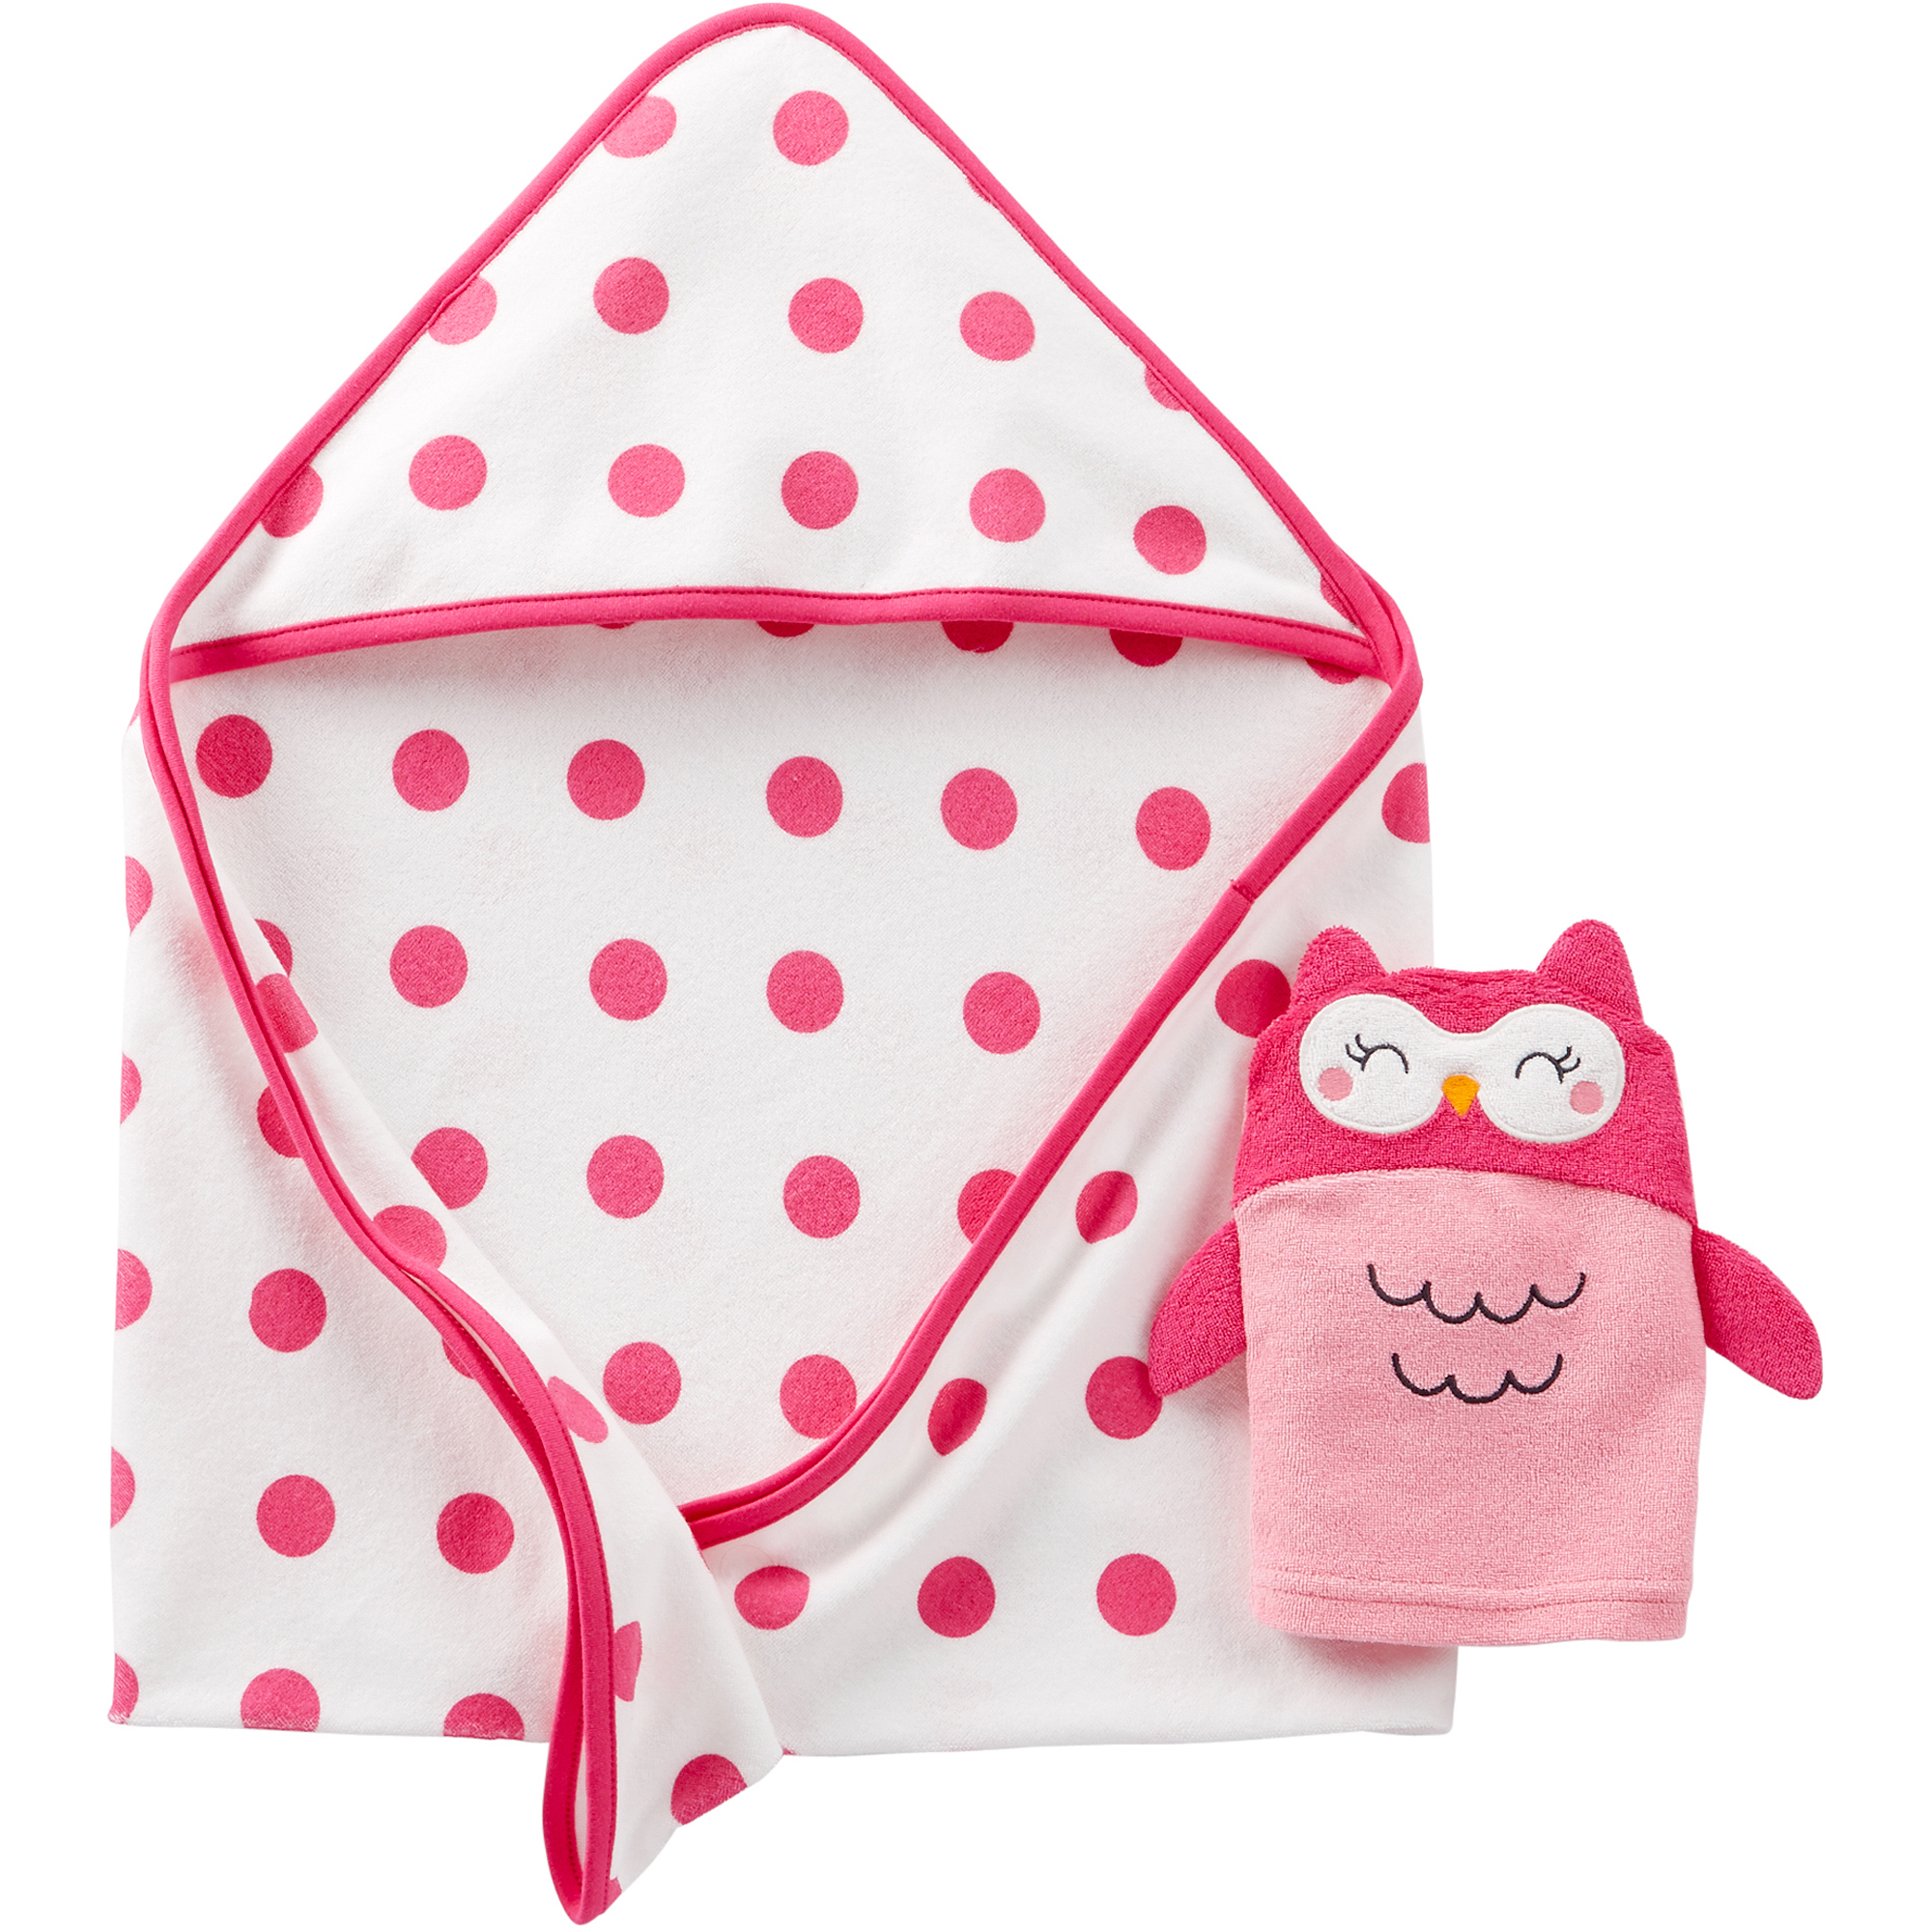 Child Of Mine By Carters Newborn Baby Girl Hooded Towel and Bath Mitt Gift Set